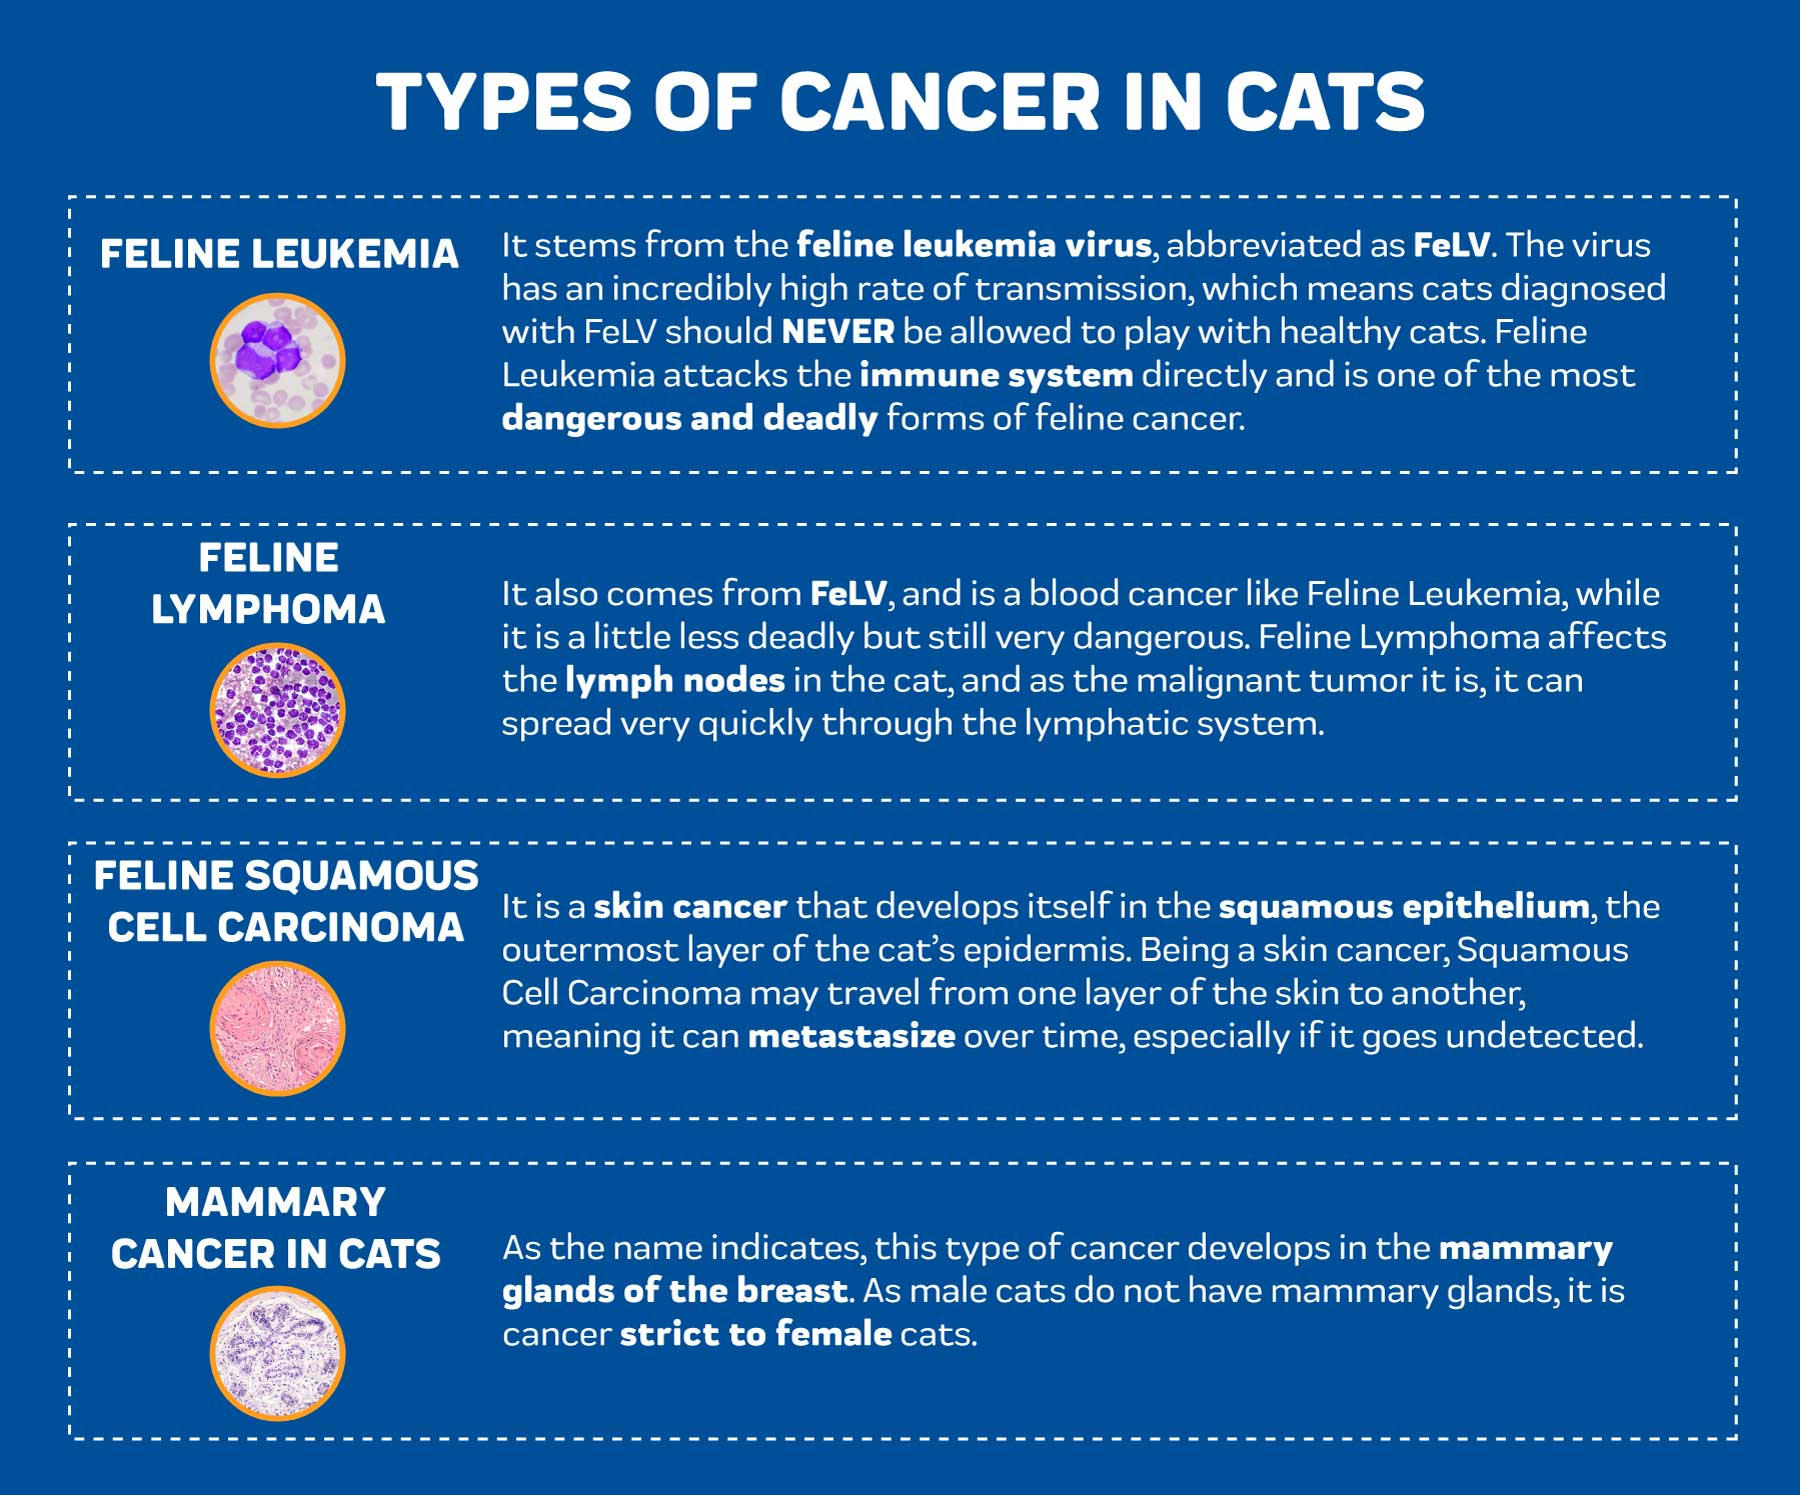 Types of Cancer in Cats